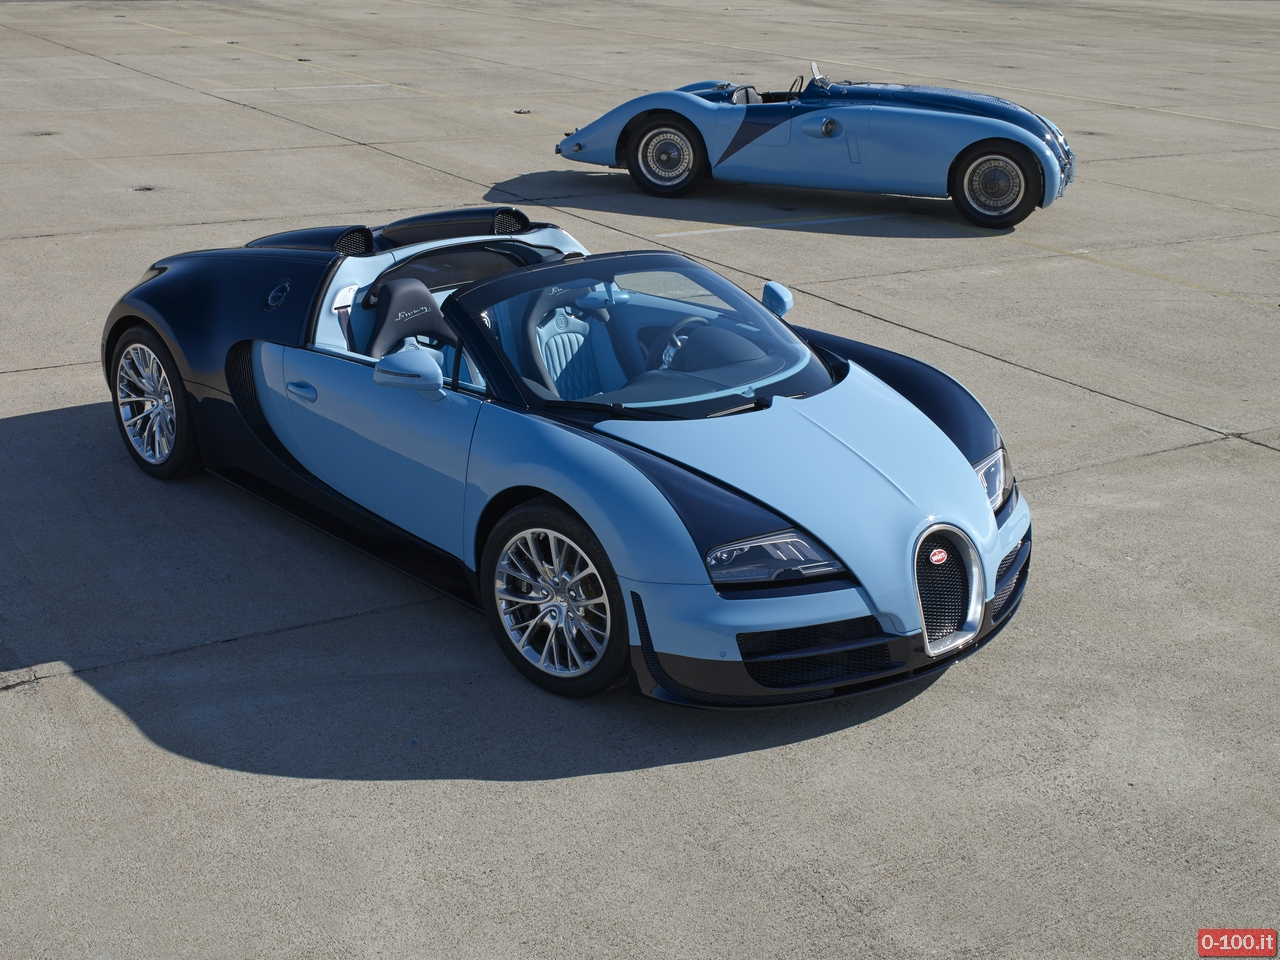 Bugatti-Veyron-16.4-Grand Sport-Vitesse-six-part-Legends-jean-pierre-wimille-57g-tank_0-100_4